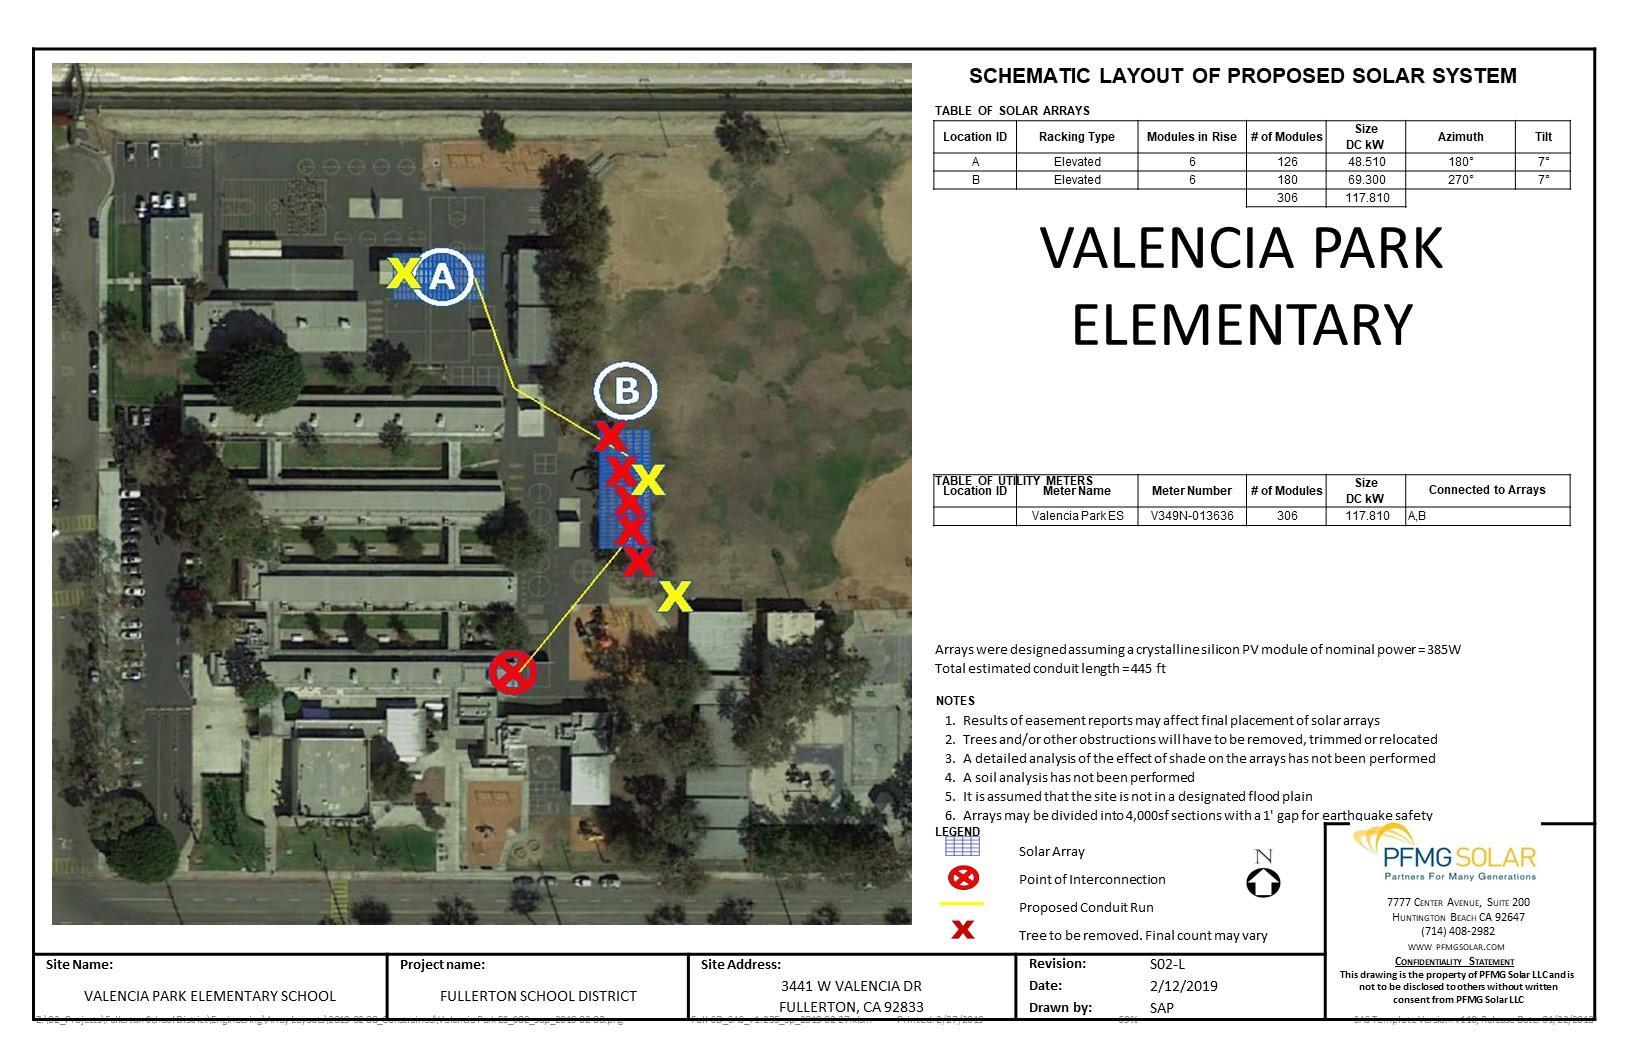 Valencia Park Elementary Schematic Layout of Proposed Solar System